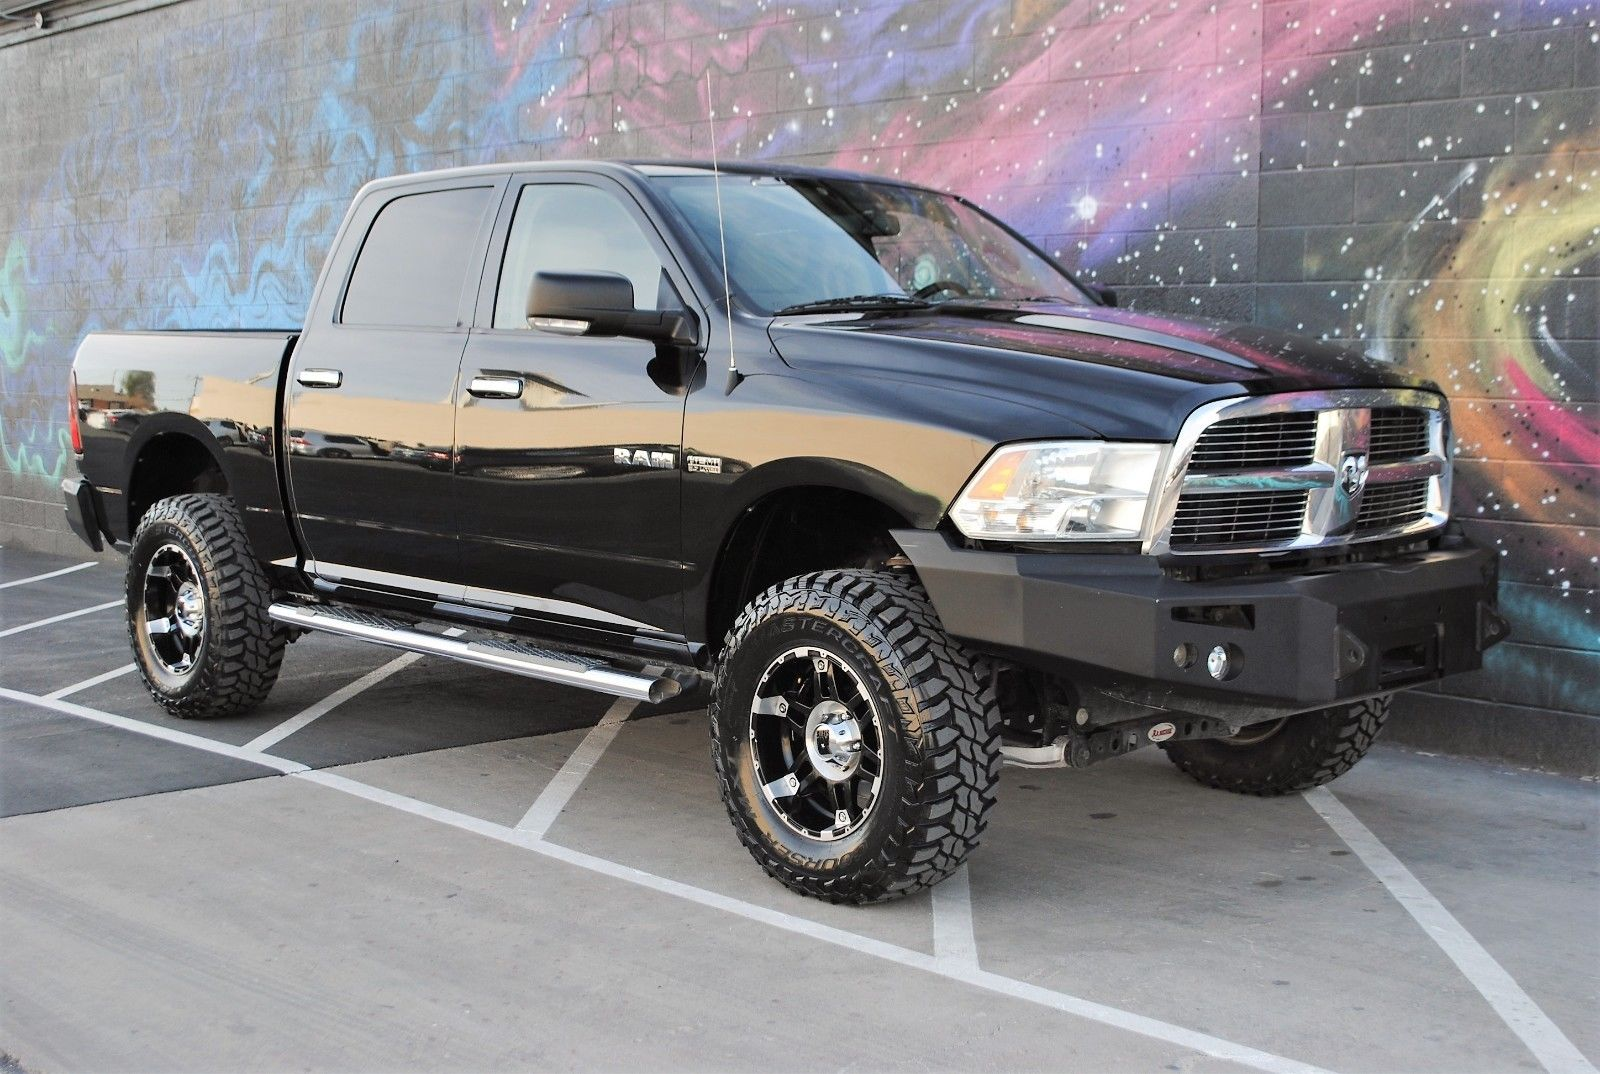 Used 2010 Dodge Ram 1500 Big Horn Edition 2010 Ram 1500 Big Horn Edition Crew Cab 4x4 Off Road Custom Bumpers Low Miles 2017 2018 Is In Stock And For Sale 24carshop Com